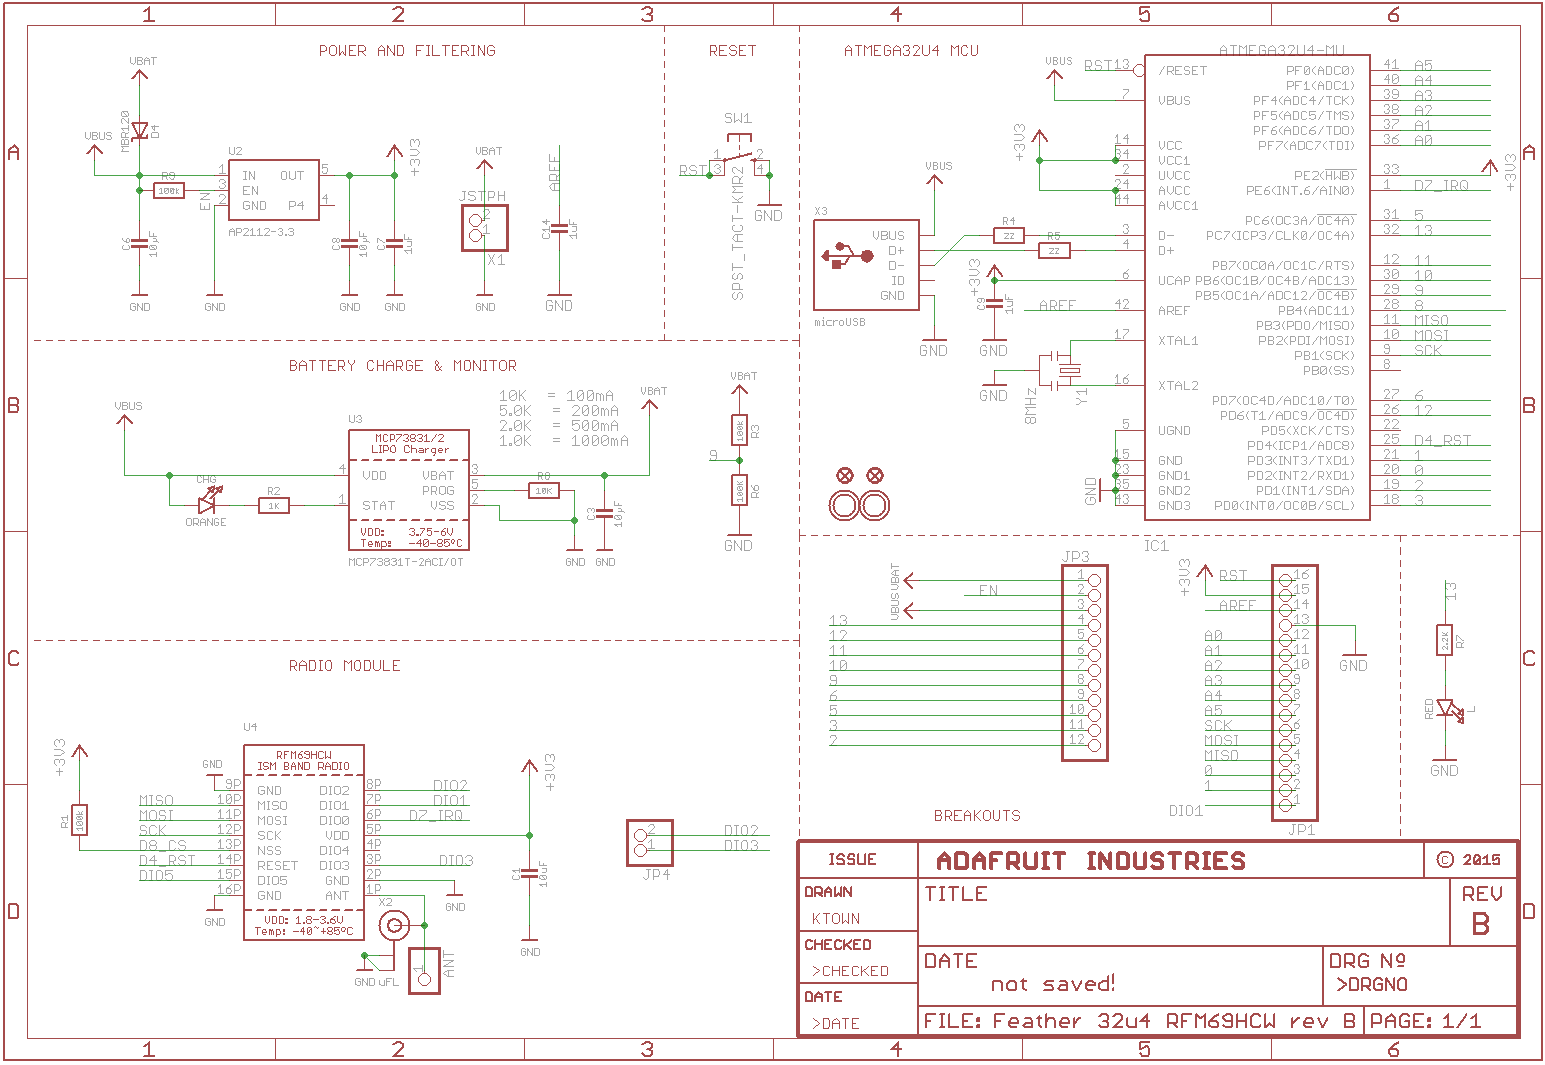 Using the BSFrance Lora32U4 board to connect to the Things